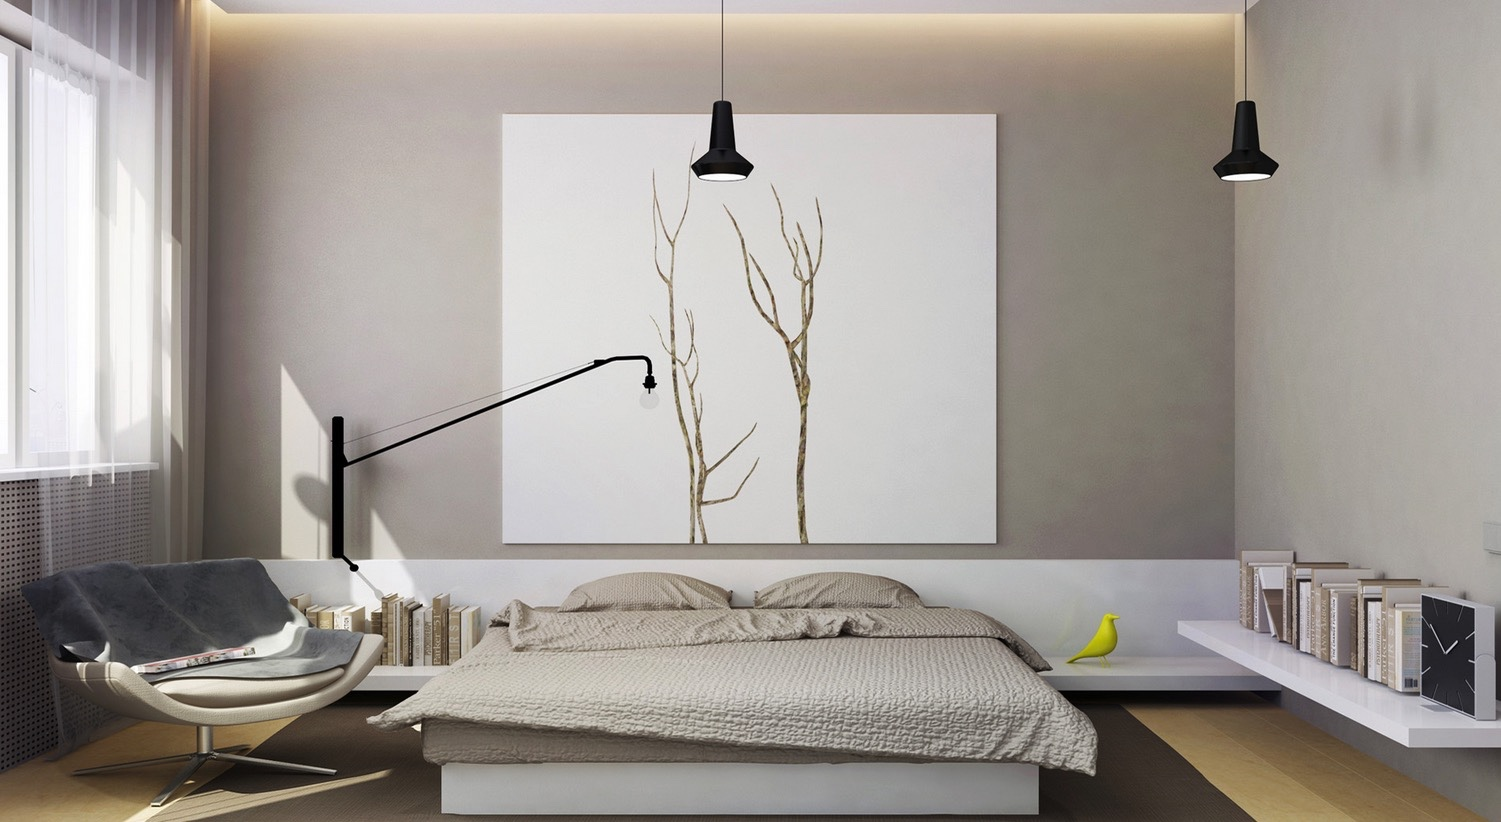 . 21 Cool Bedrooms for Clean and Simple Design Inspiration